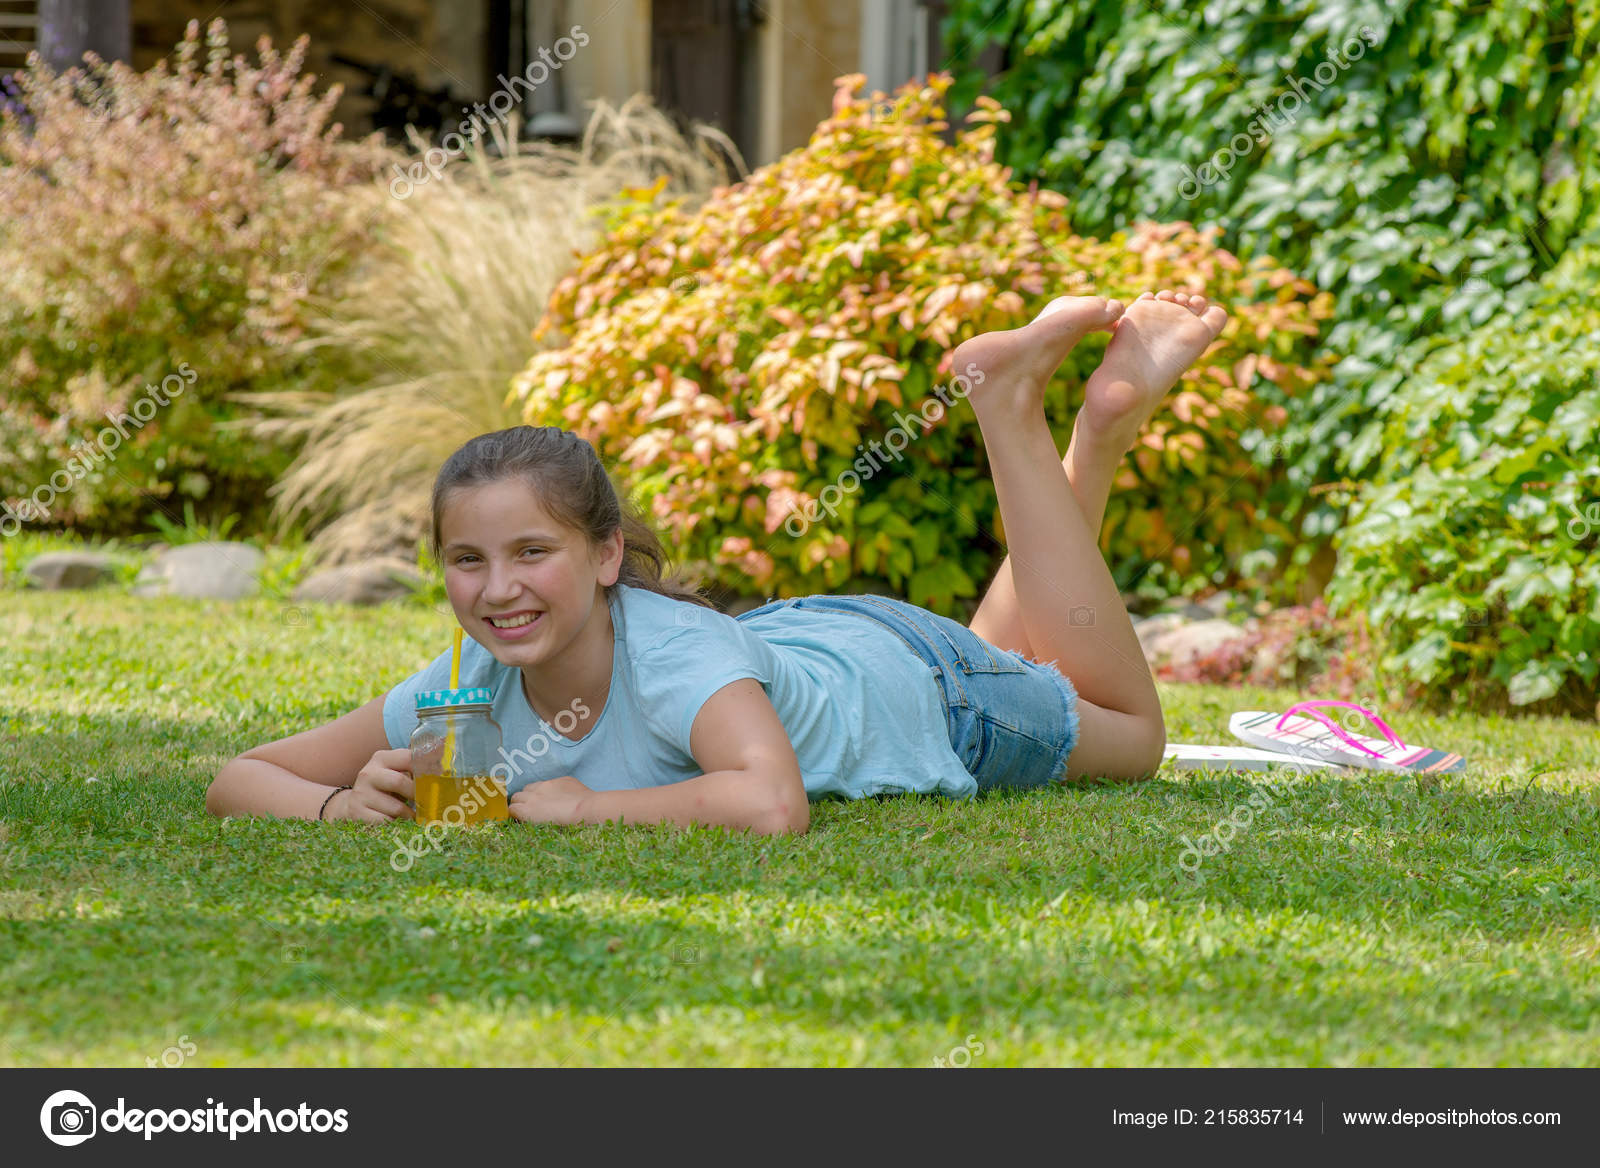 Outdoor portrait of a cute young black girl lying down on